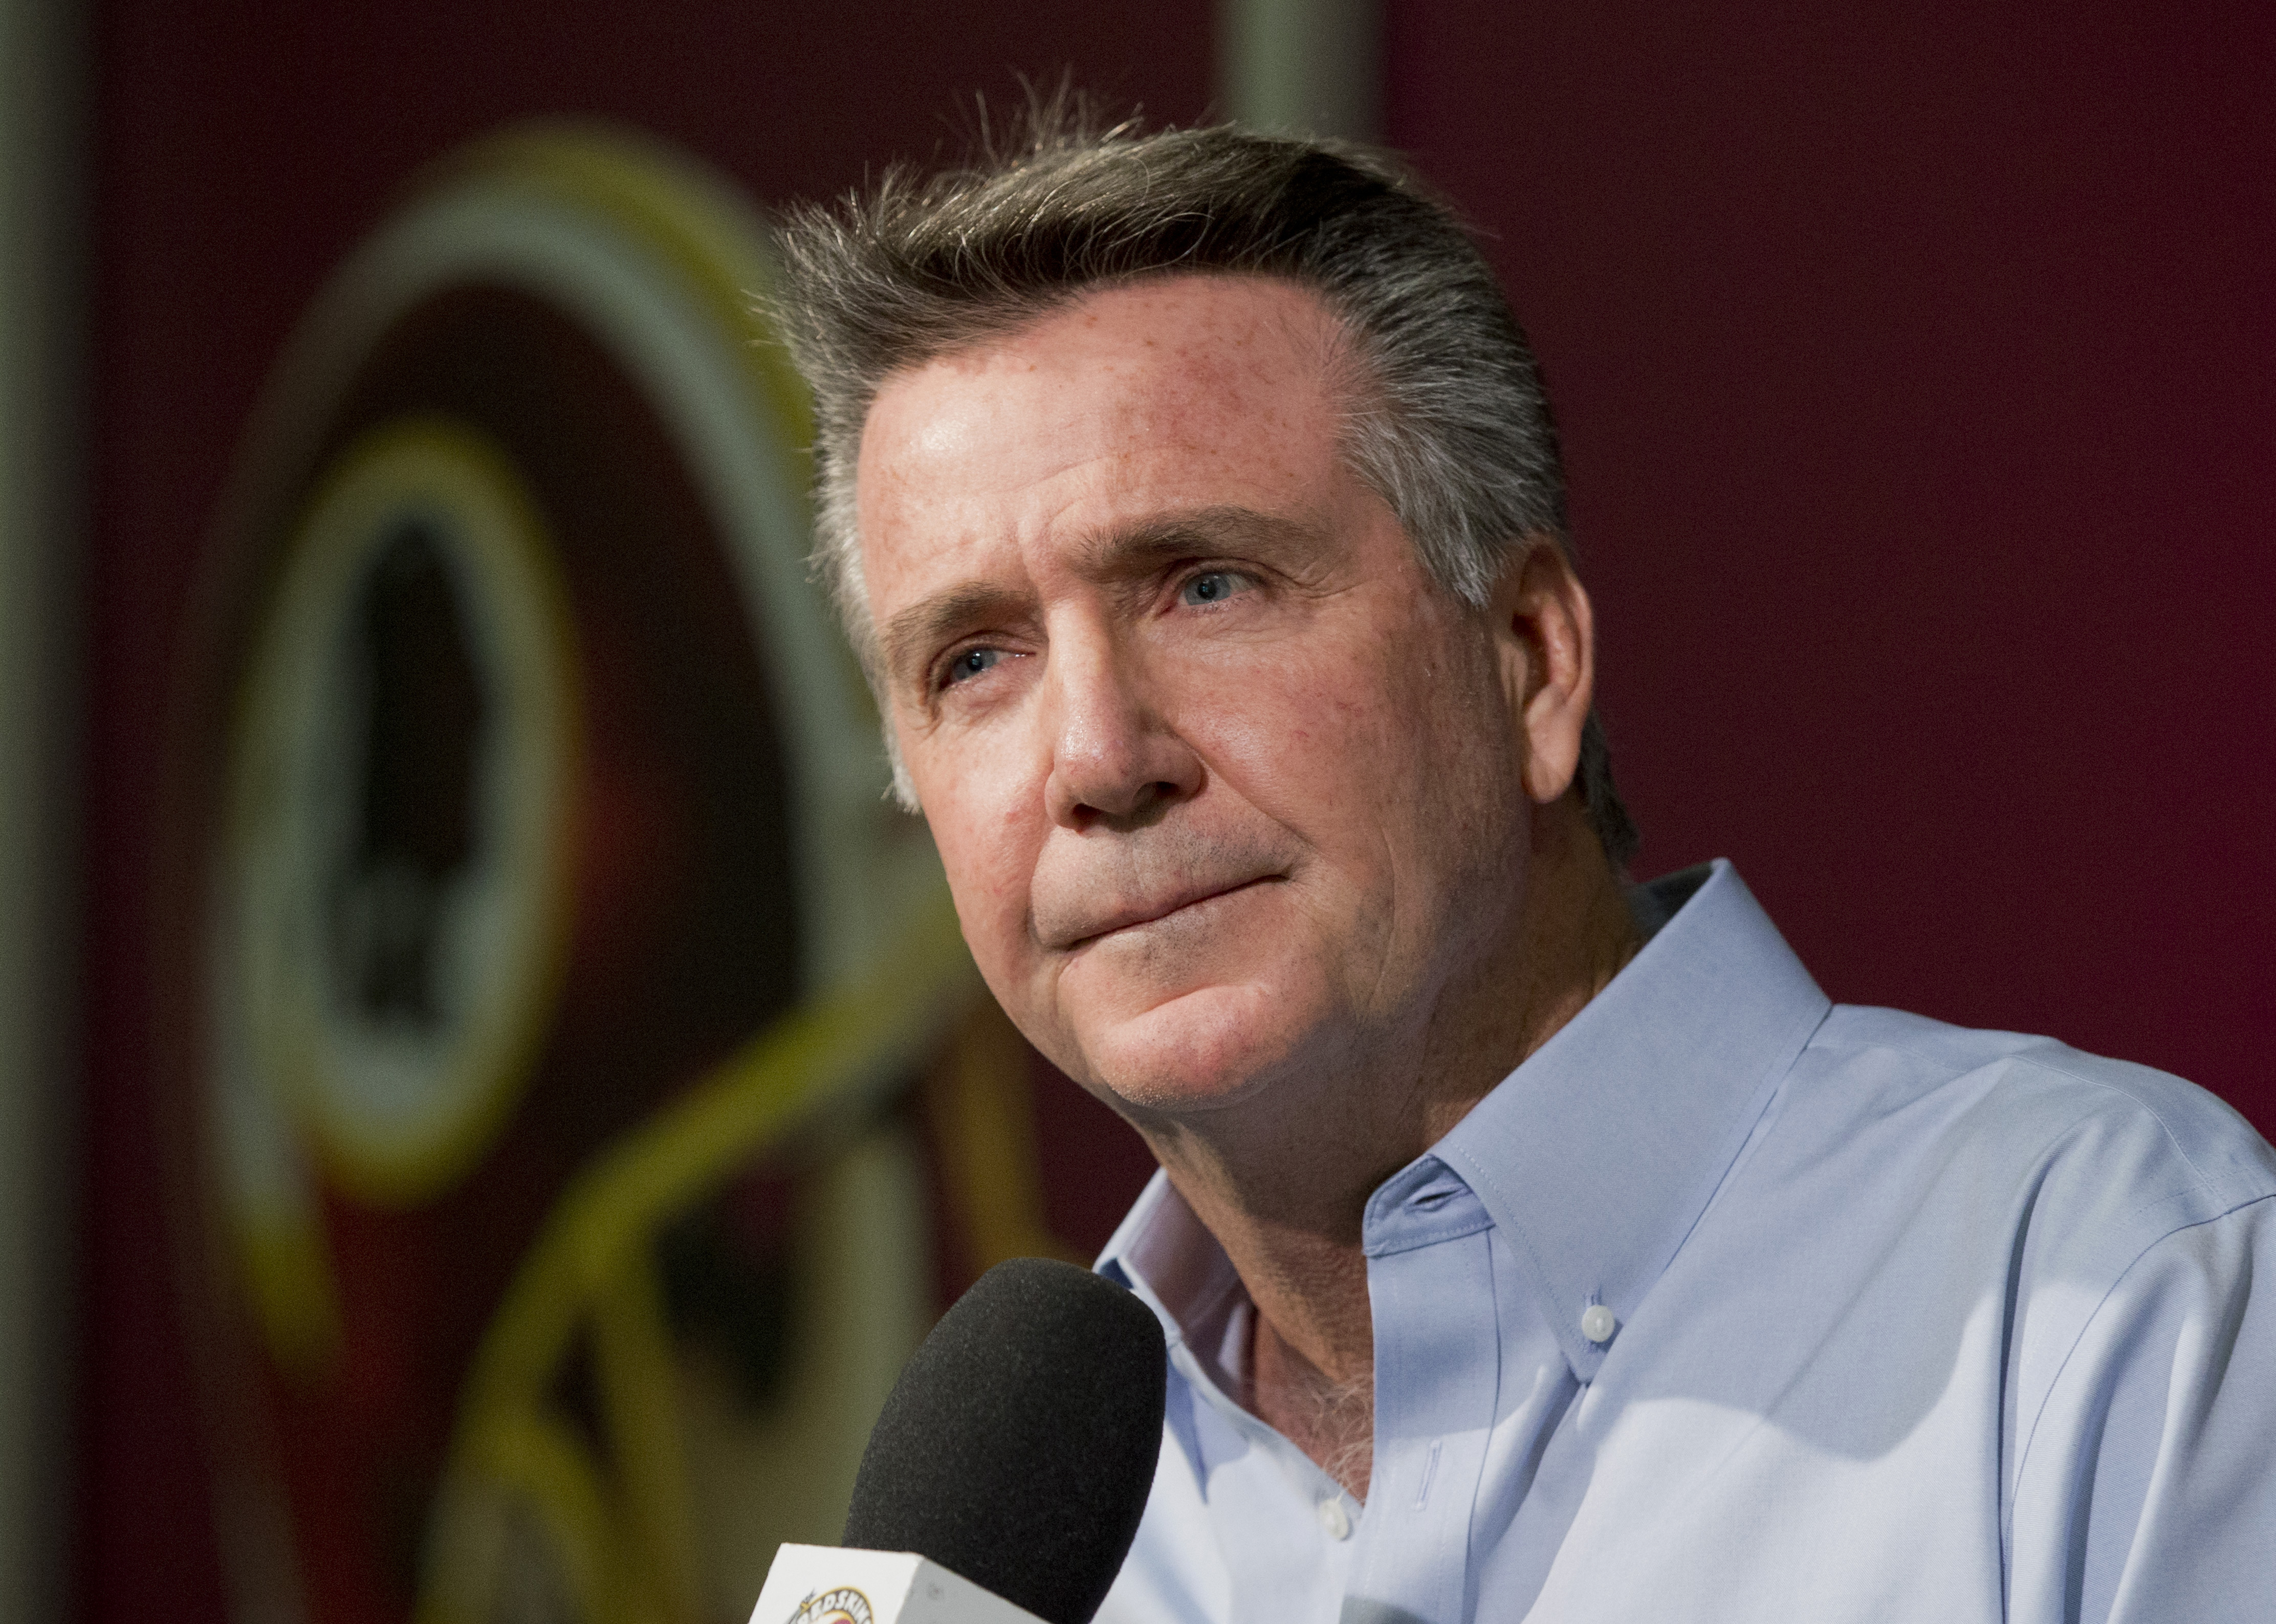 Redskins' president: Expect 'electric atmosphere' at FedEx Field